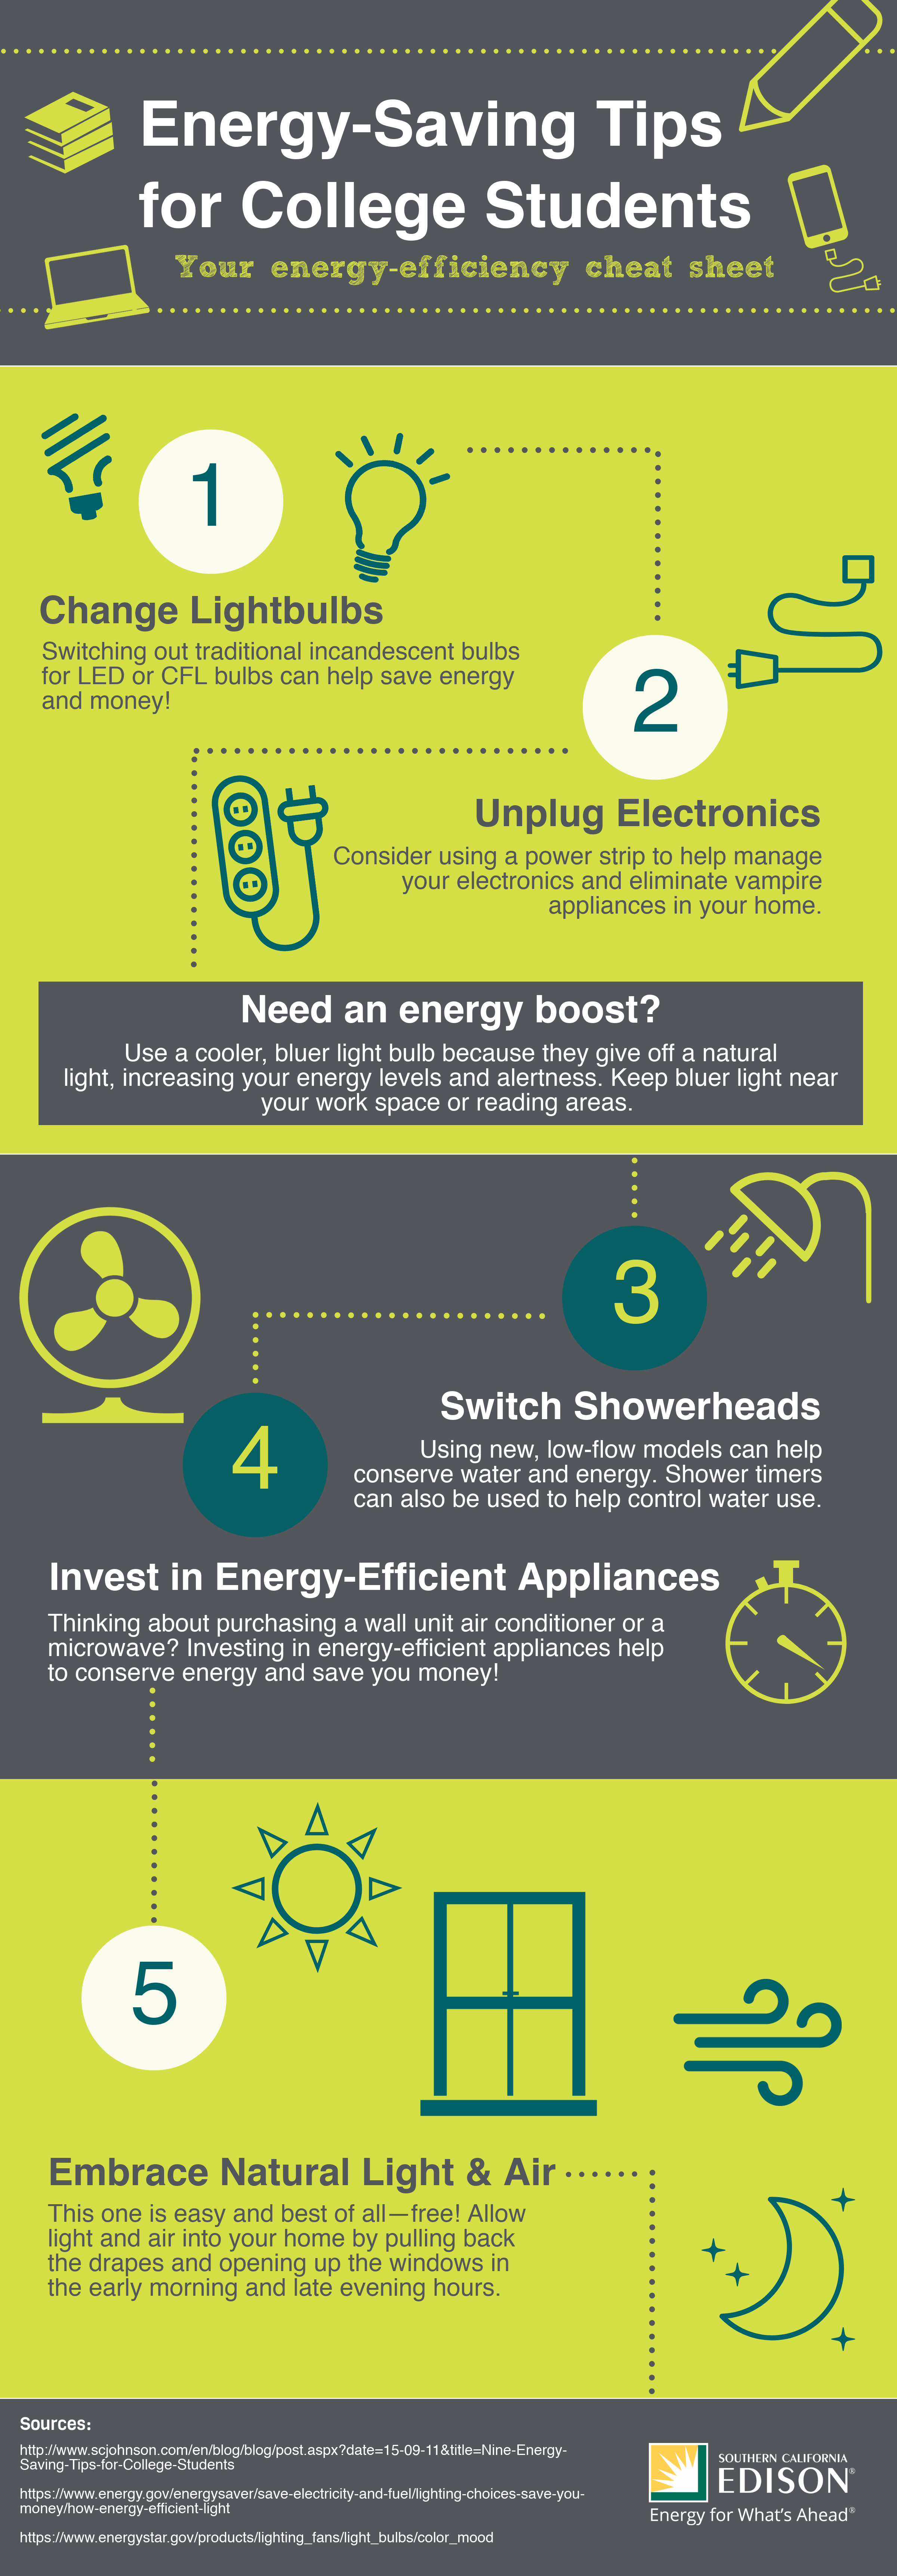 energy tips for college students